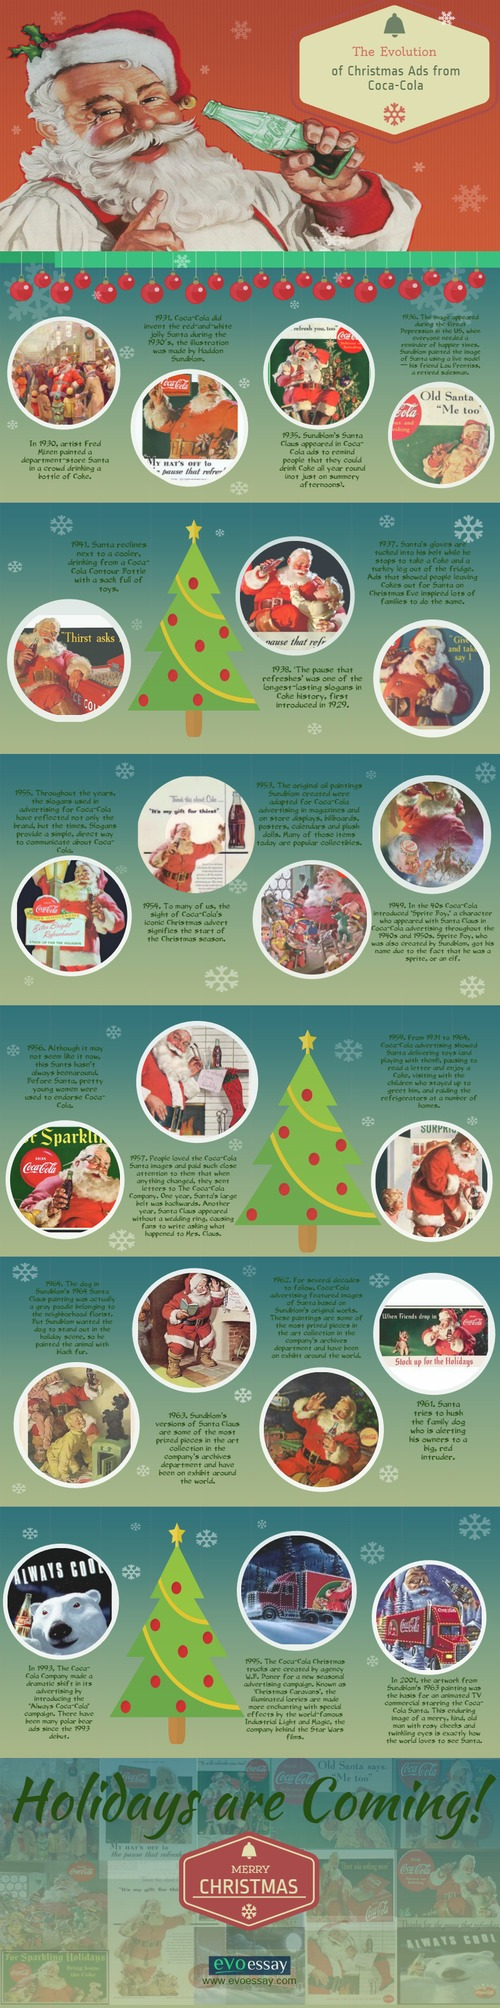 The Evolution of Christmas Ads from Coca-Cola #infographic